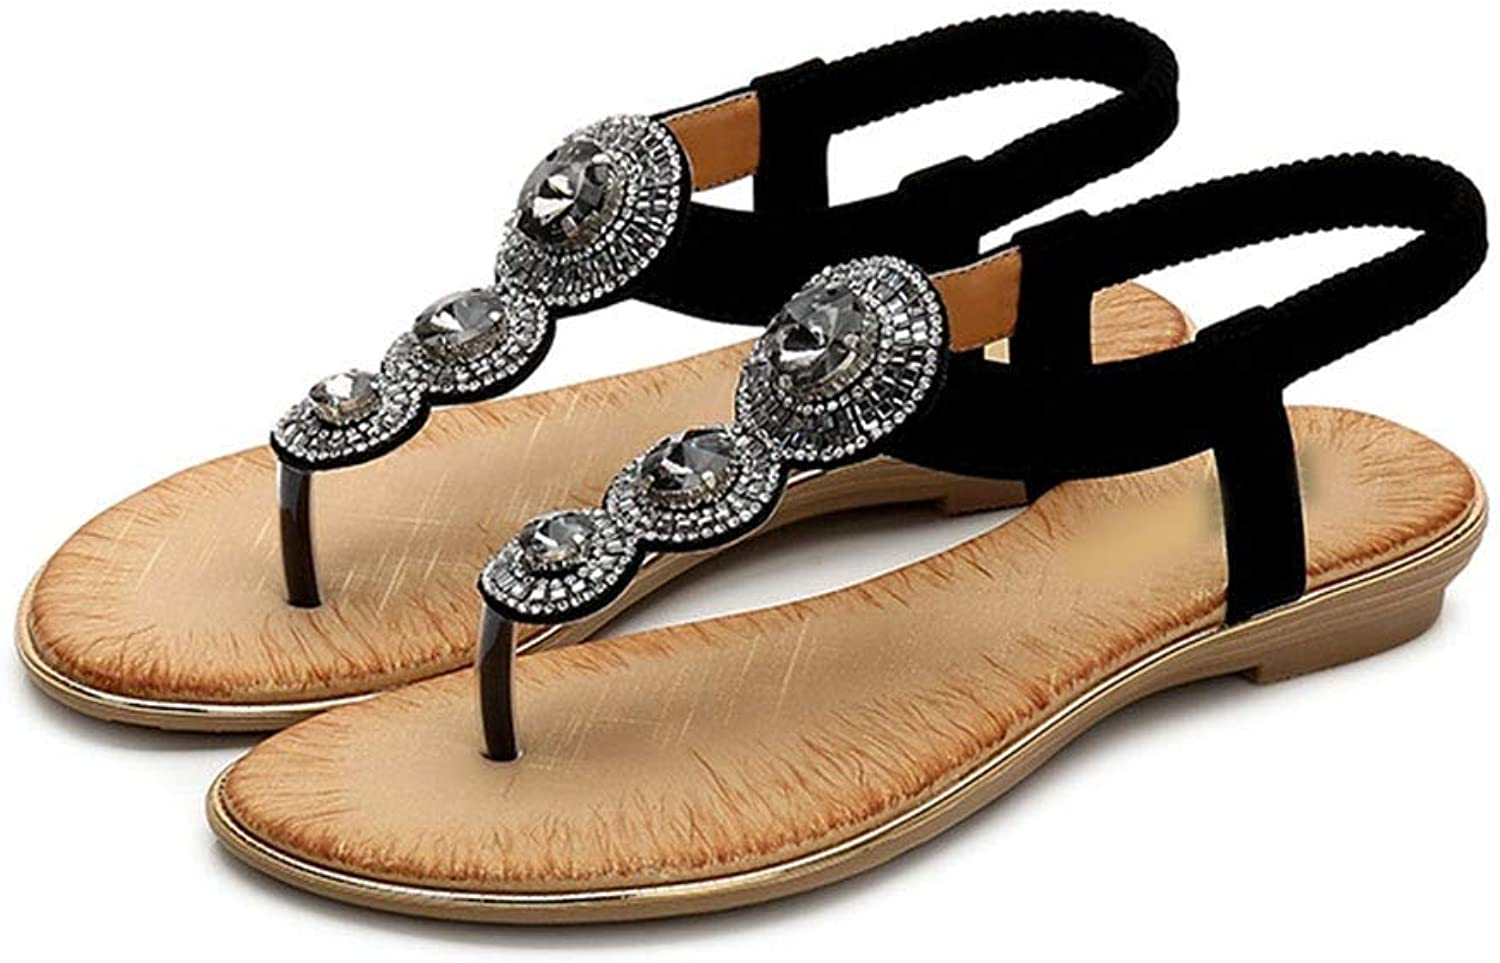 WENNEW Bohemian Rhinestone Sandals Beach shoes Effortless Wild Toe Flavourless shoes